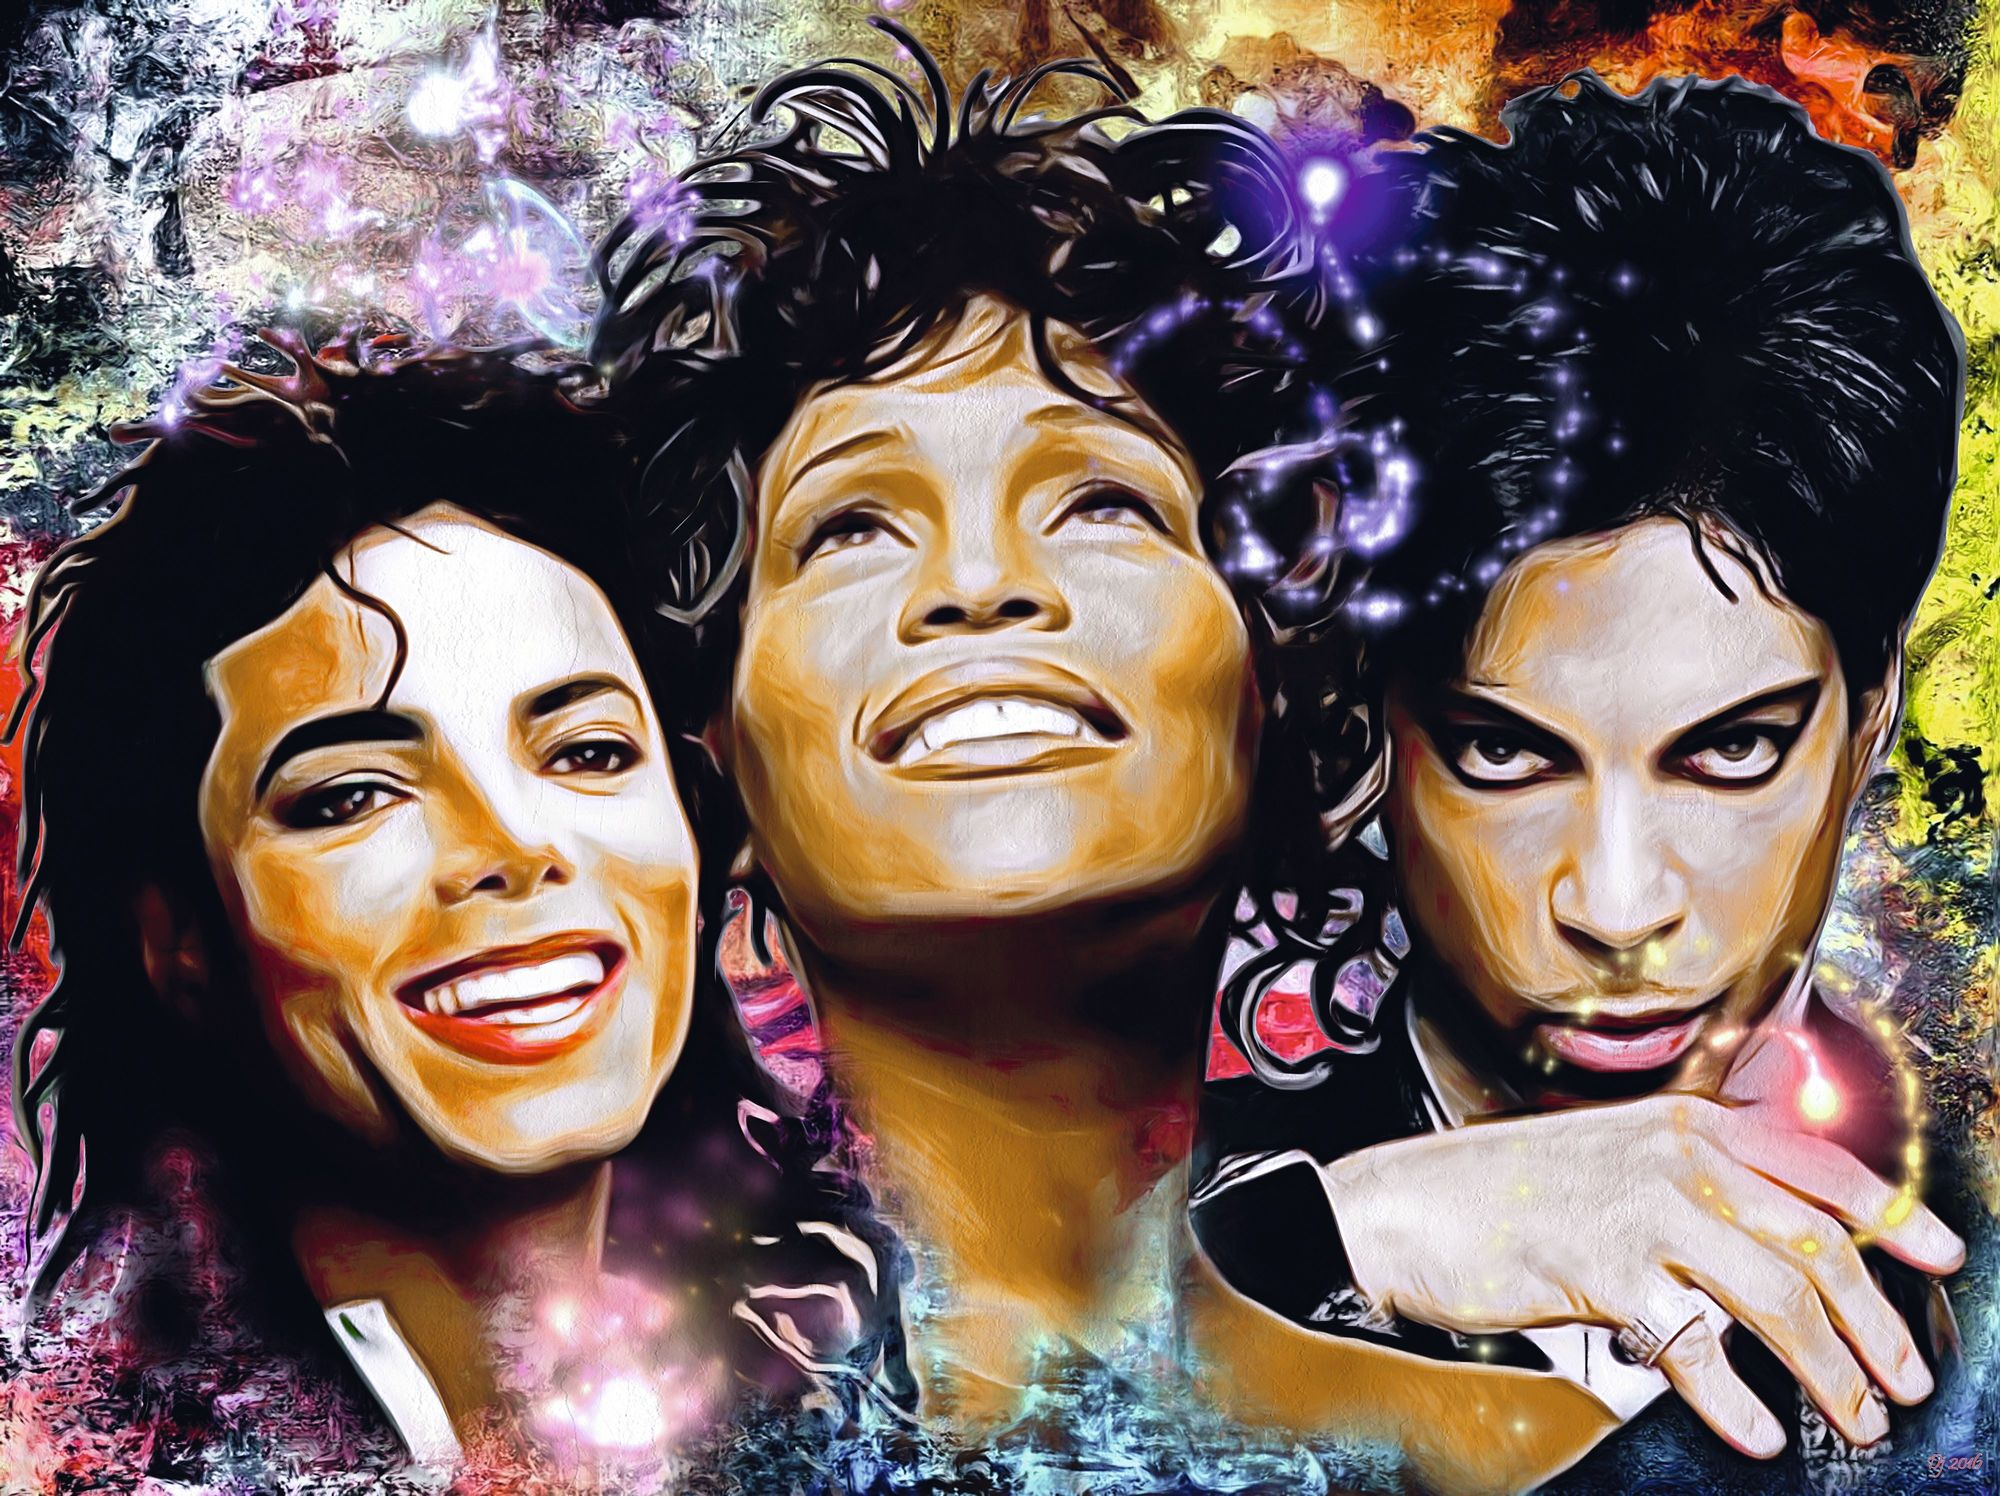 The King, the Queen and the Prince (Michael Jackson , Whitney Houston and Prince), by Daniel Janda, 2018.